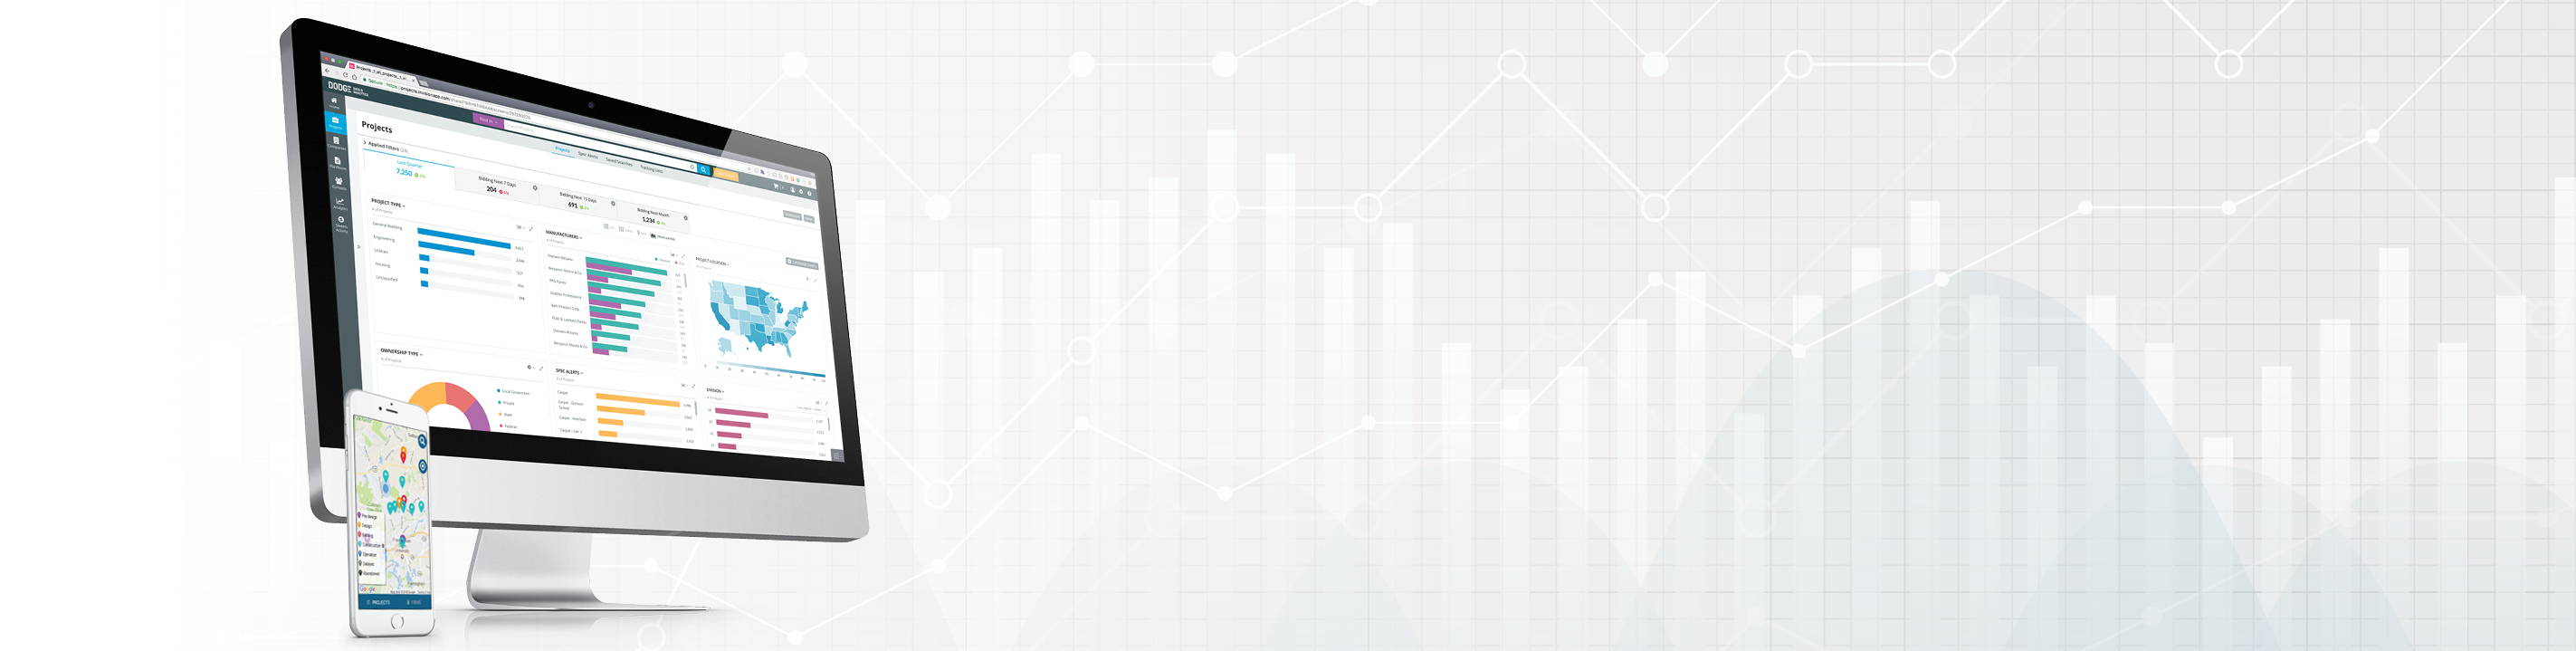 dodge data and analytics construction projects and bidding